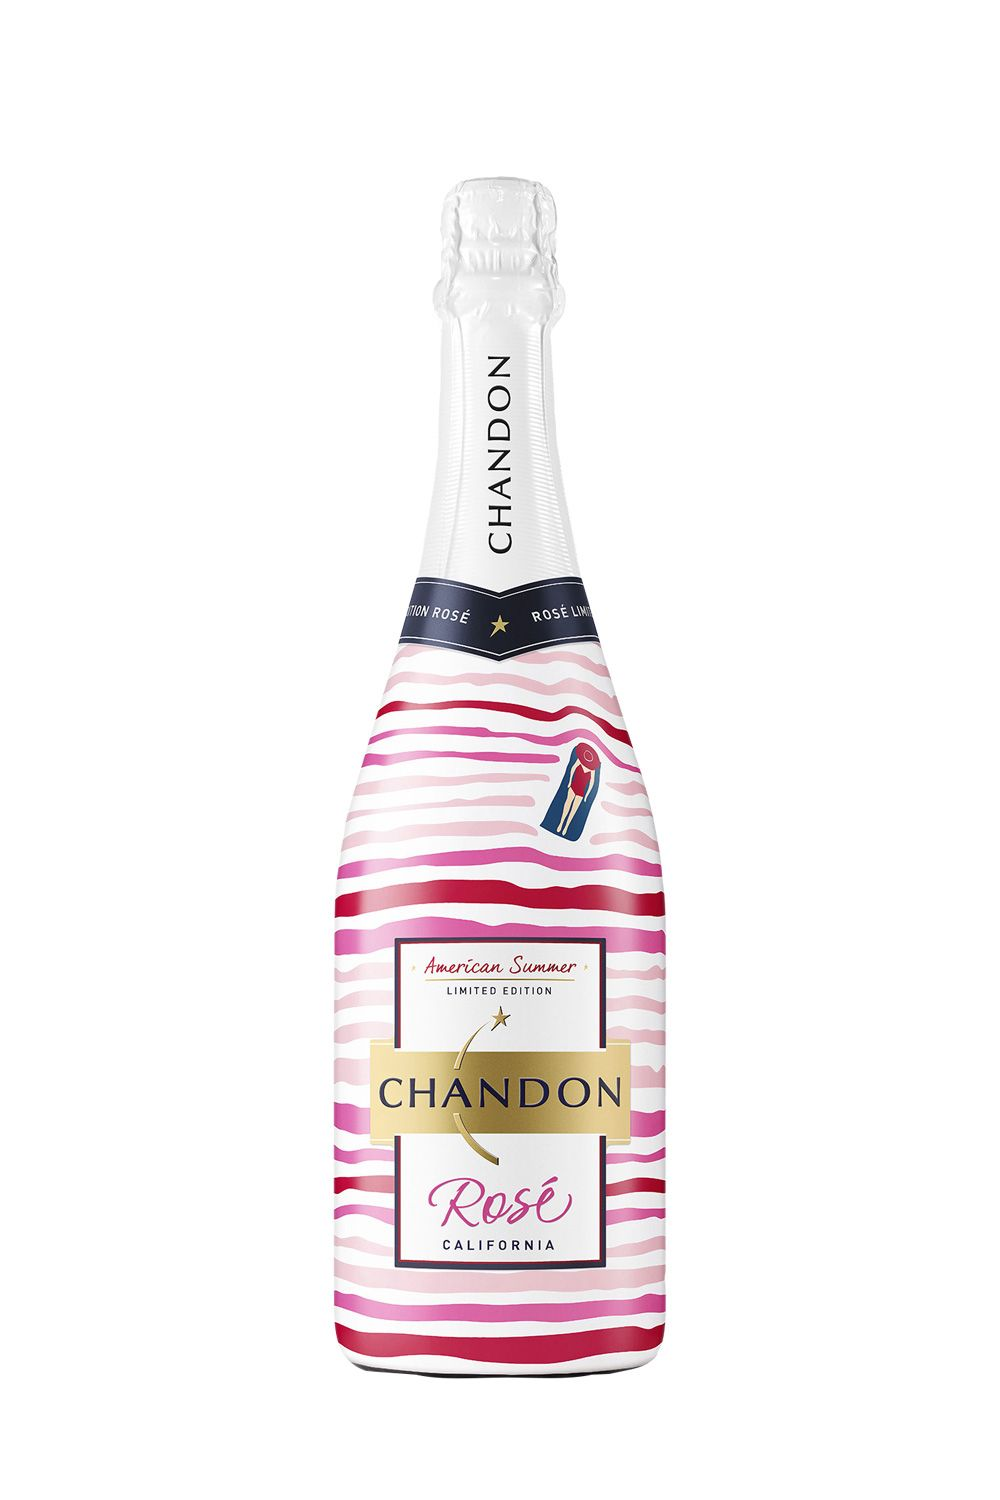 "<p>Checks all the basic-but-aren't-we-all boxes: bubbles, rosé, limited-edition.&nbsp&#x3B;</p><p><em data-redactor-tag=""em"" data-verified=""redactor"">Chandon, $28</em></p><p><strong data-redactor-tag=""strong"" data-verified=""redactor"">BUY IT: <a href=""http://www.chandon.com/products/limited-edition-rose-summer-2017/"" target=""_blank"" data-tracking-id=""recirc-text-link"">chandon.com</a>.</strong></p>"